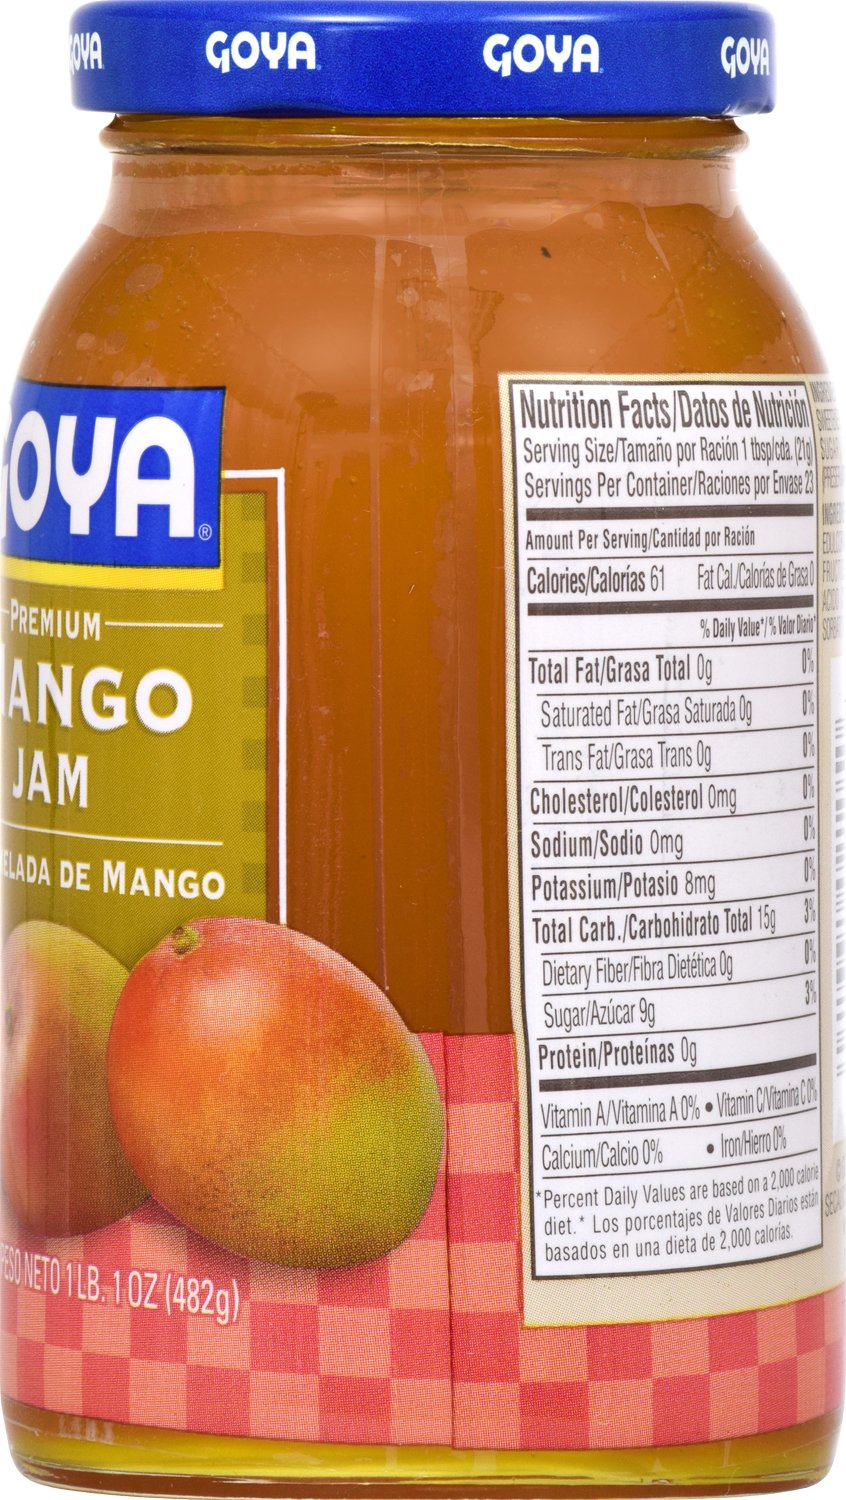 Amazon.com : Goya Foods Premium Mango Jam, 17 Ounce (Pack of 12) : Grocery & Gourmet Food